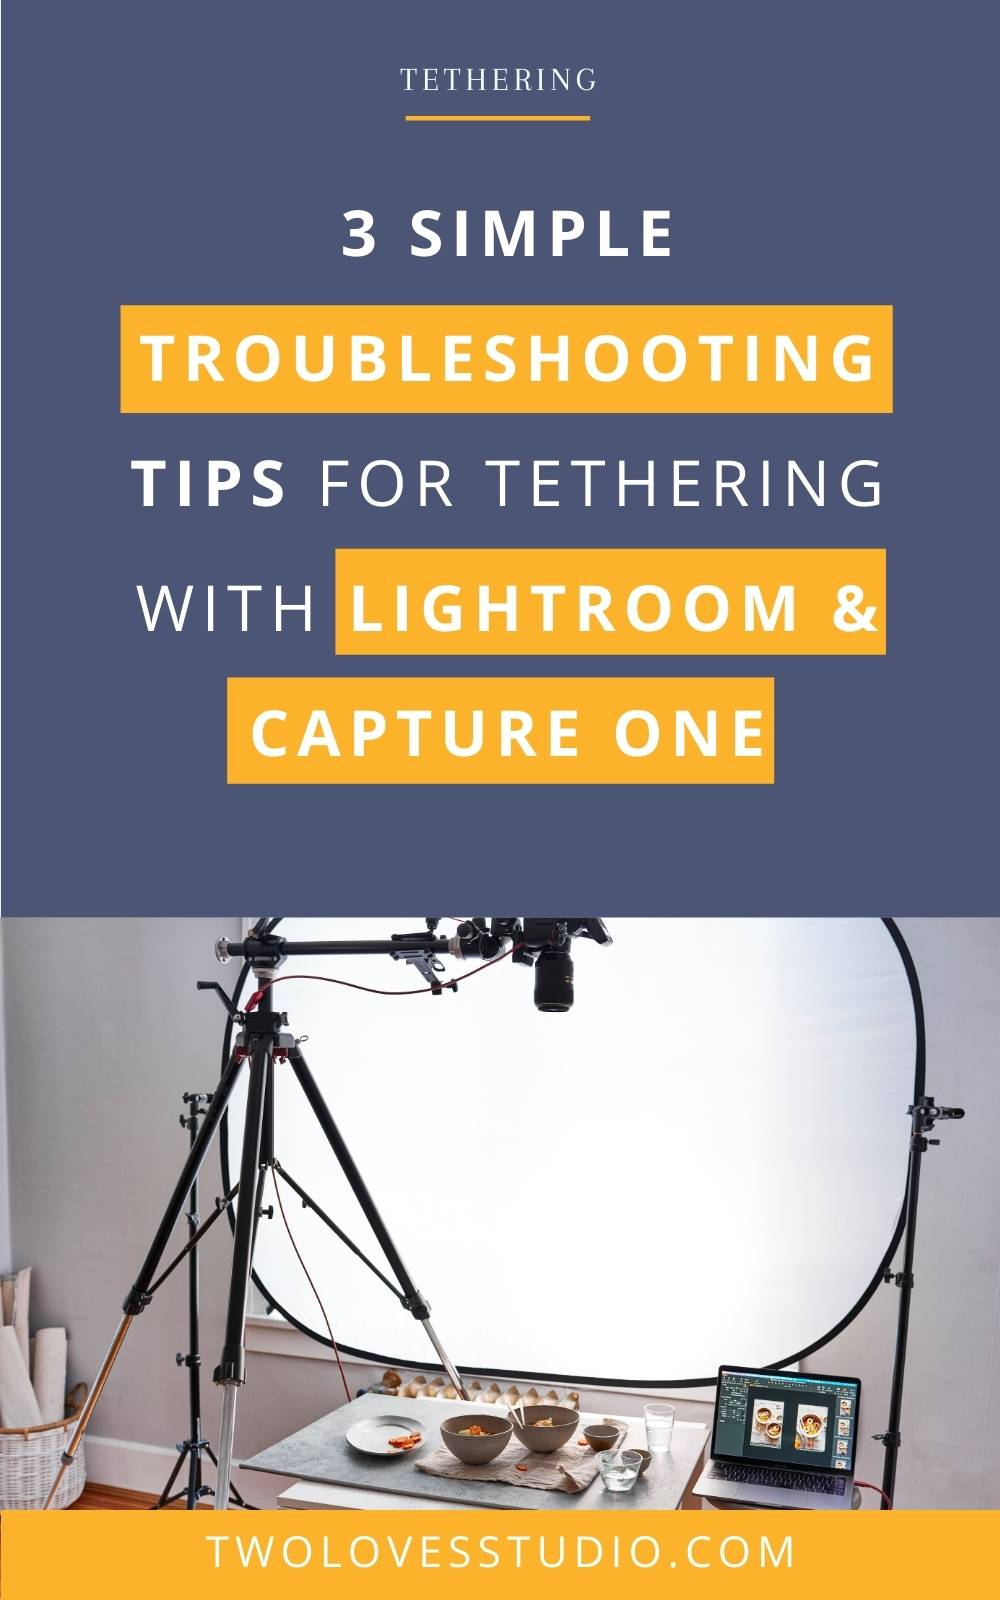 Behind the scenes shots of tethering and photography set up.